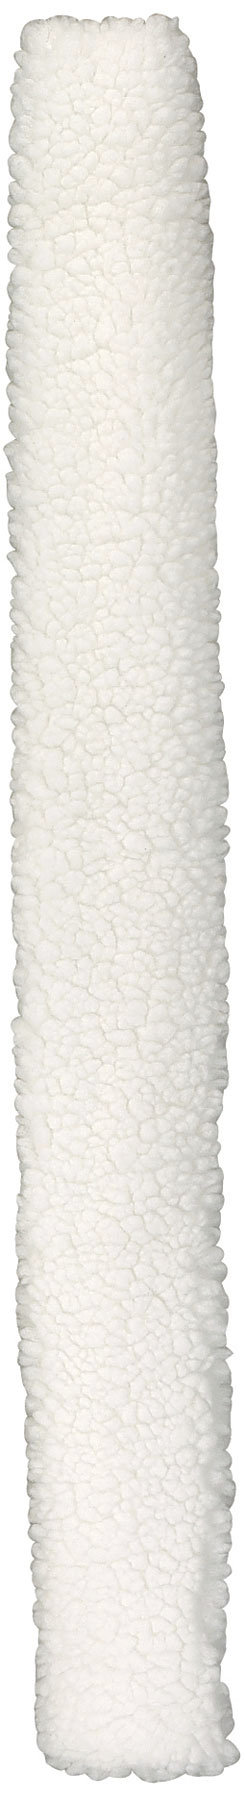 Perri's Leather Collection Replacement Sheepskin Best Price